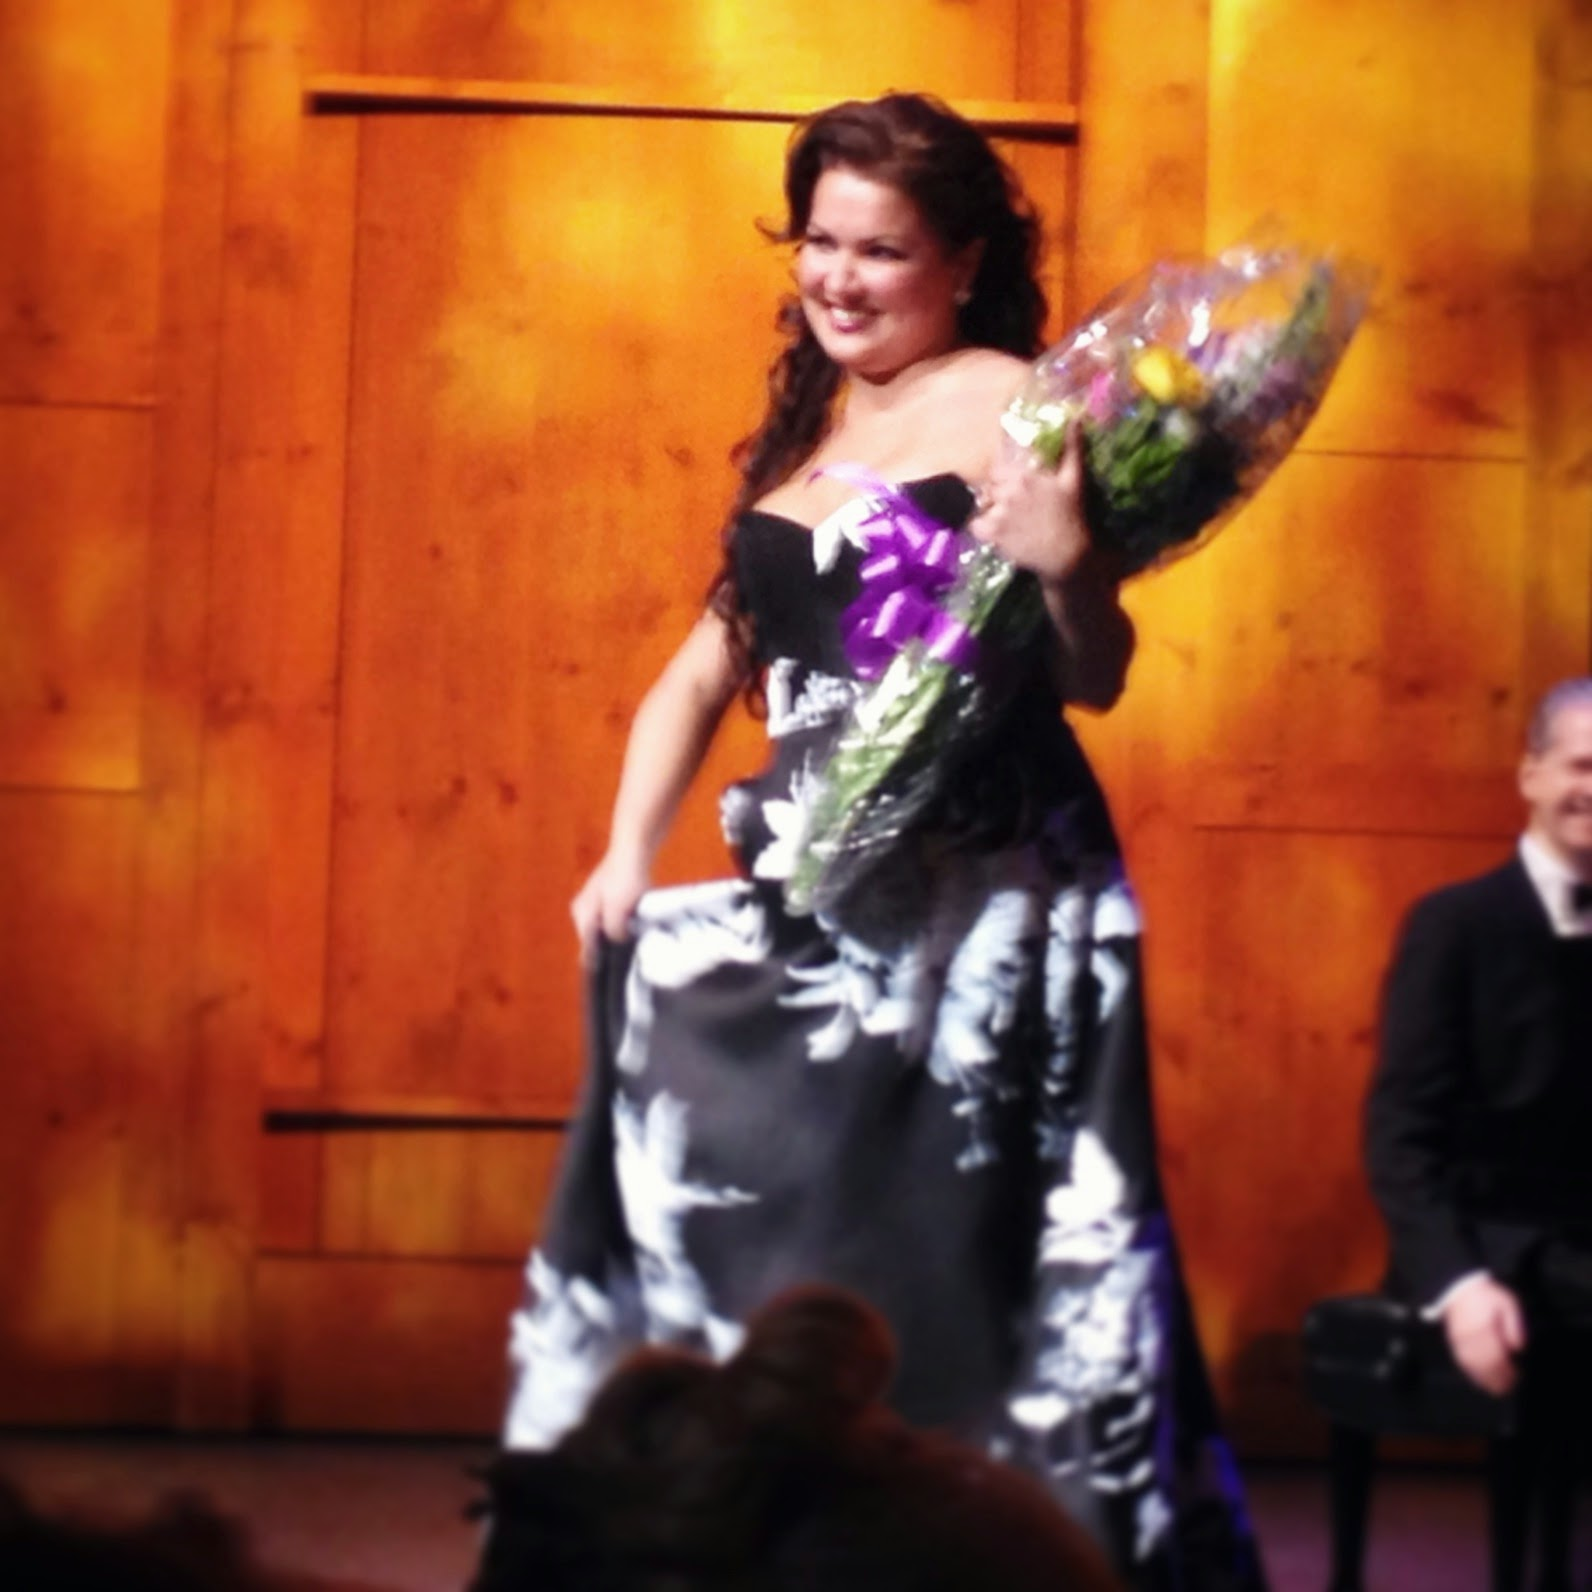 Anna Netrebko recital in VPAC on Feb. 5, 2015